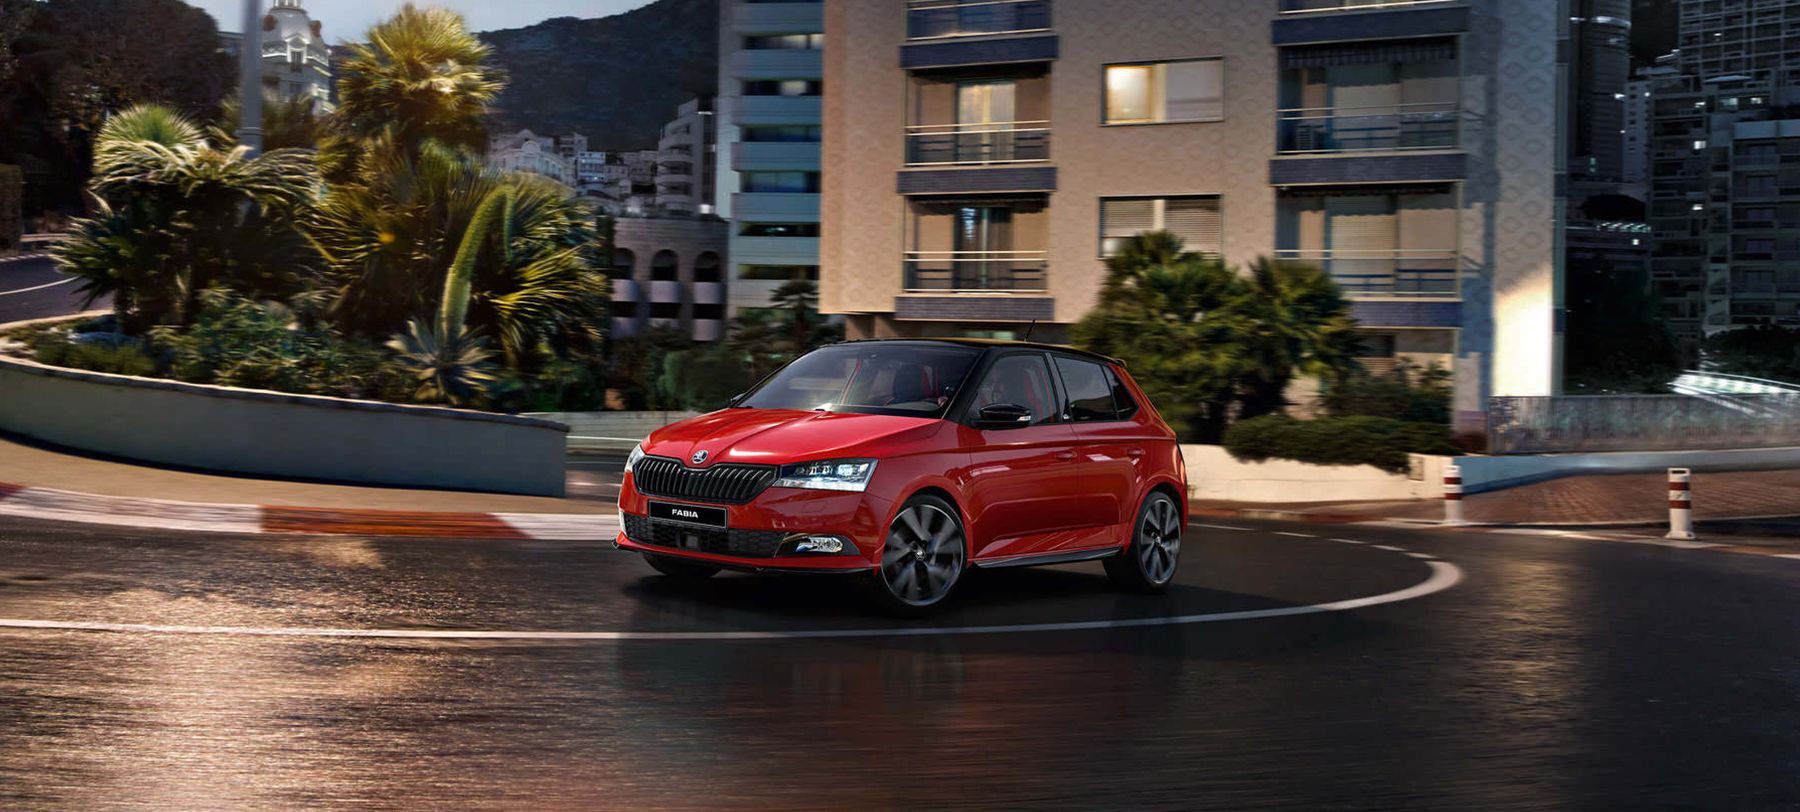 Red Fabia